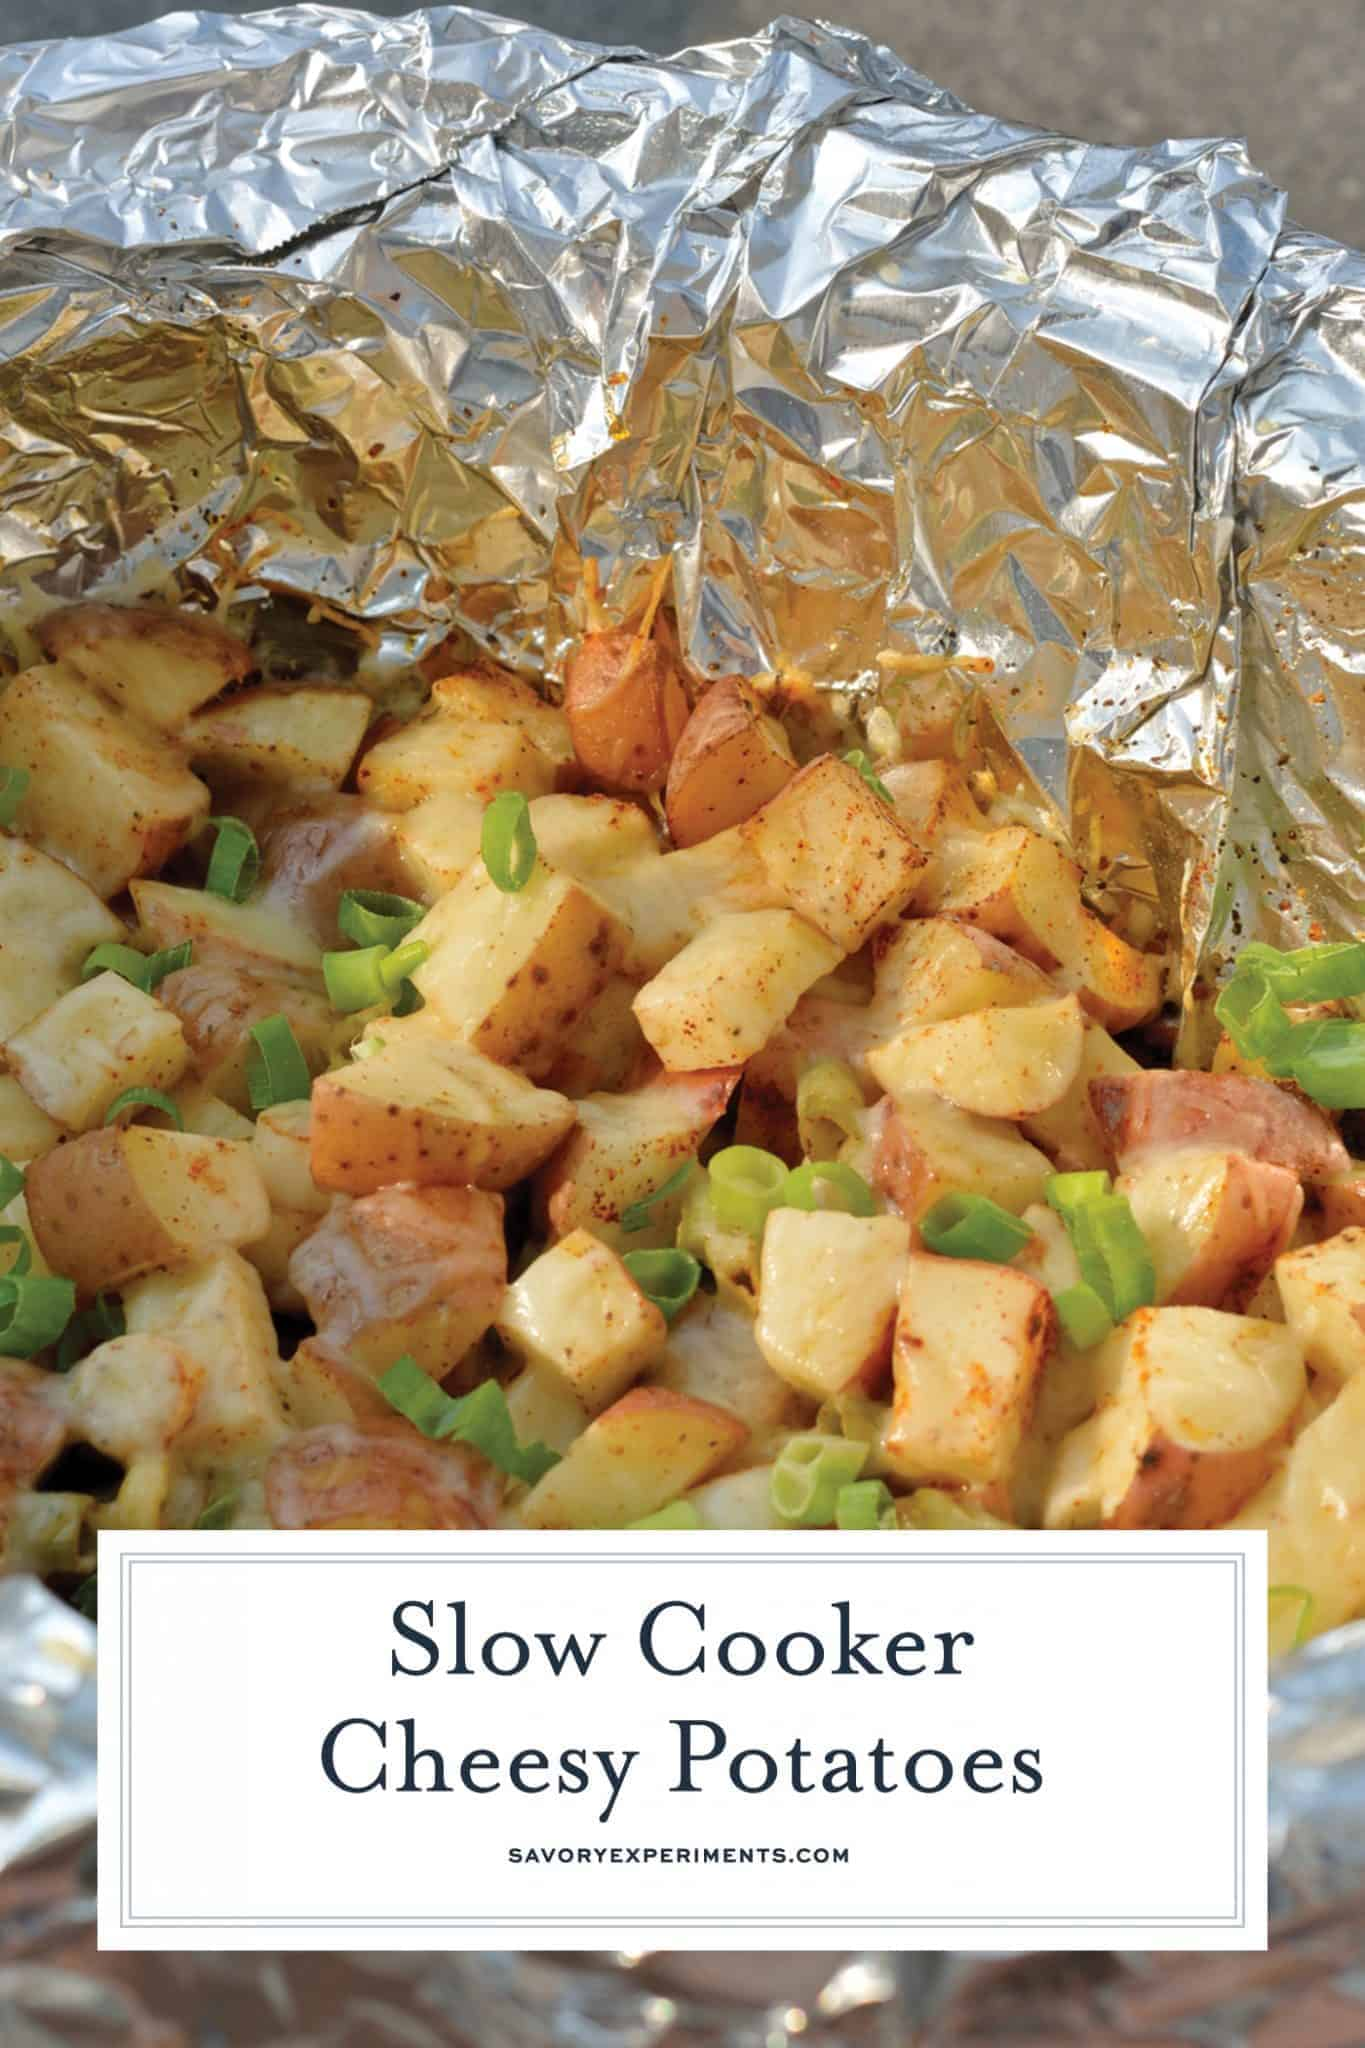 Slow Cooker Cheesy Potatoes stay super moist while cooking and are topped with loads of ooey, gooey CHEESE, bacon and seasoning. #crockpotpotatoes #cheesypotatoes www.savoryexperiments.com